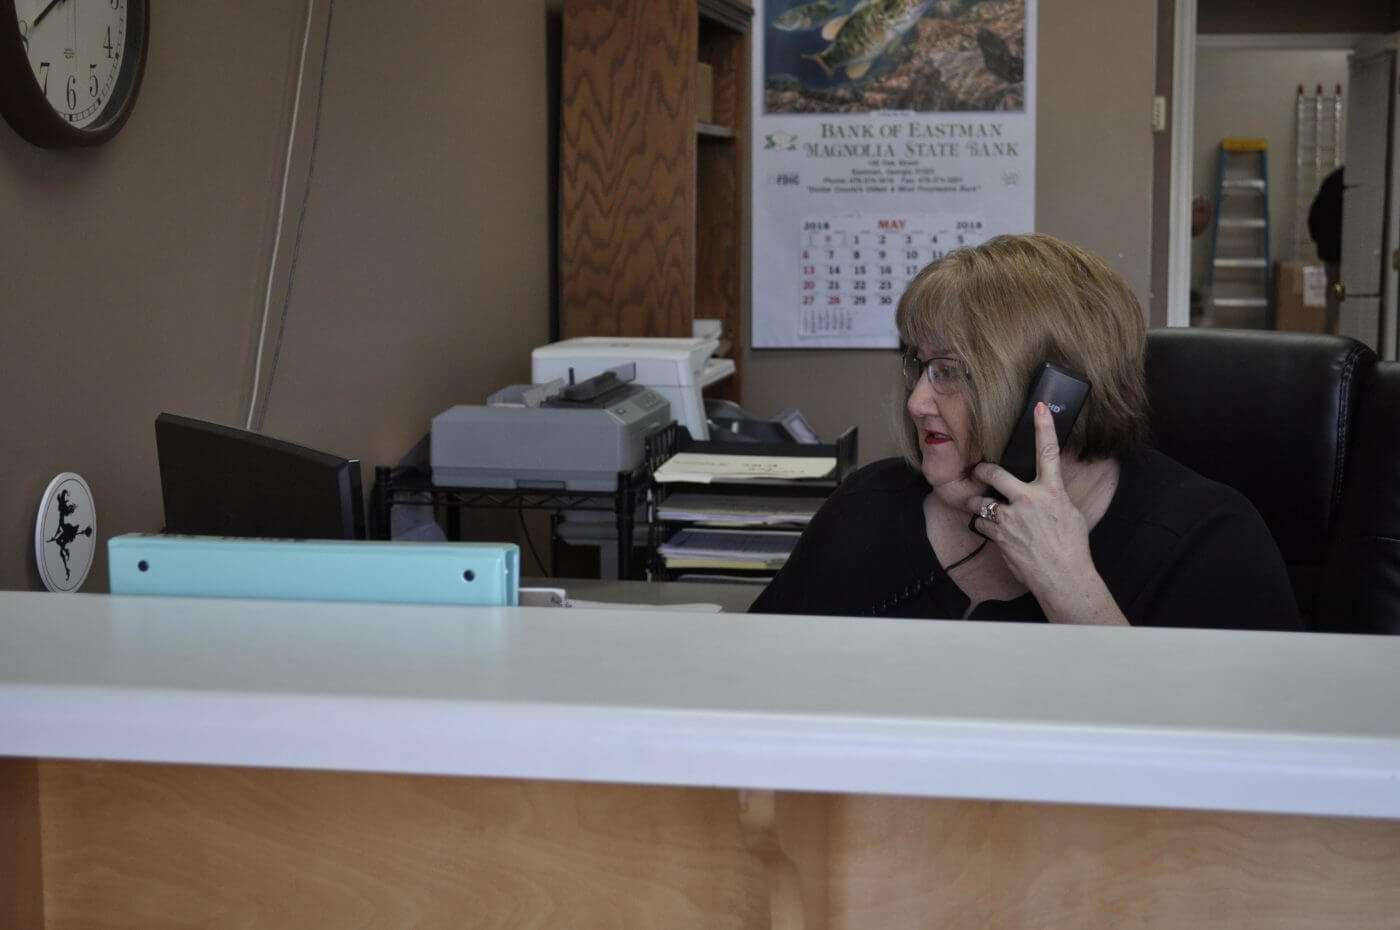 Bug House Eastman pest control employee on the phone with a client